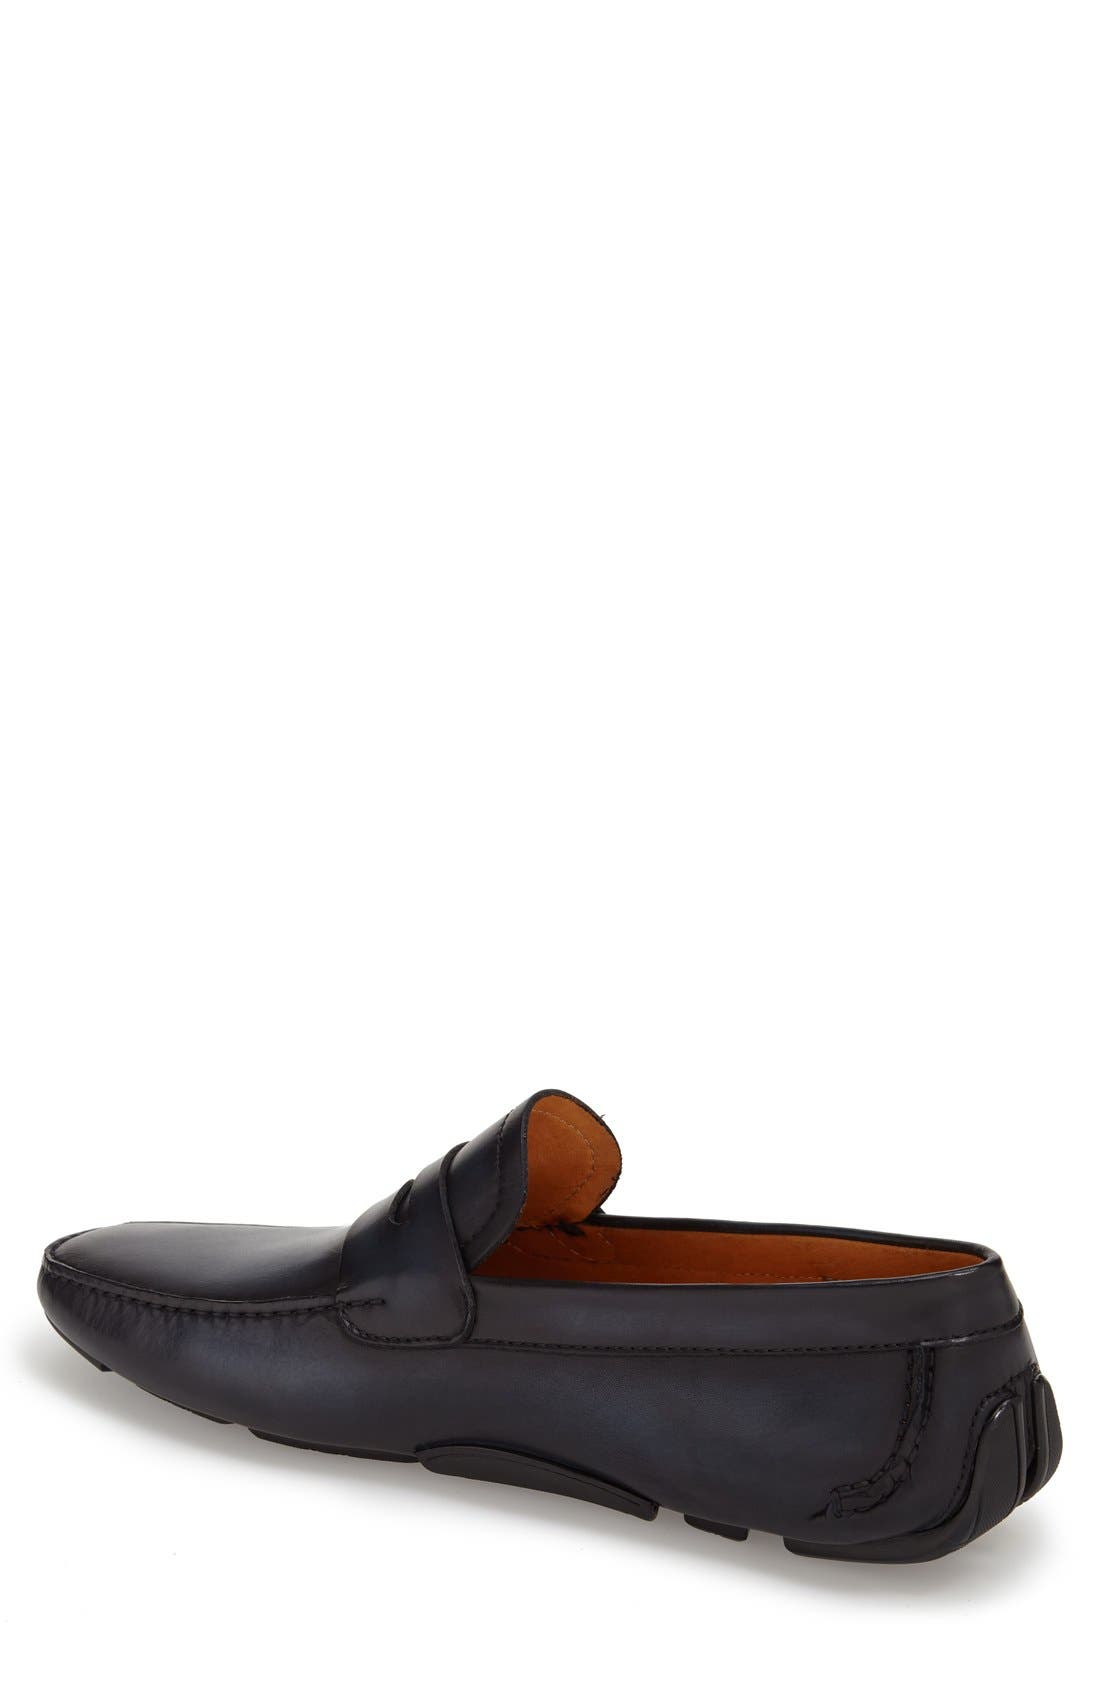 'Dylan' Leather Driving Shoe,                             Alternate thumbnail 8, color,